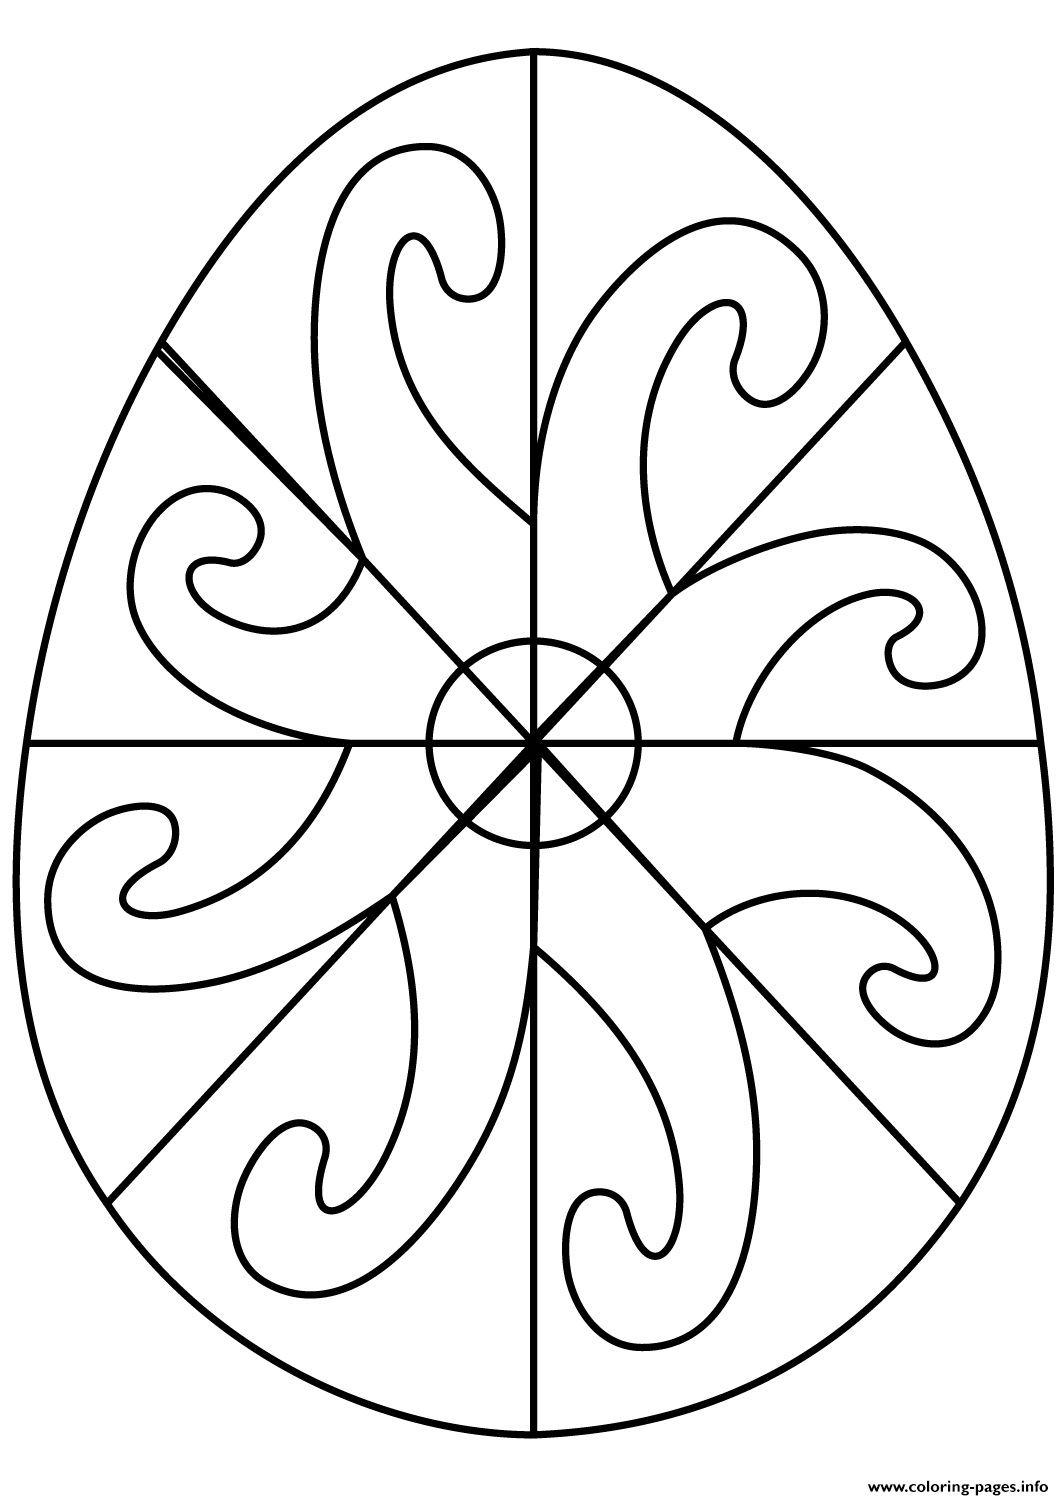 Easter Egg with Spiral Pattern Coloring Pages Printable Gallery Of Easter Basket Coloring Pages to Print Gallery